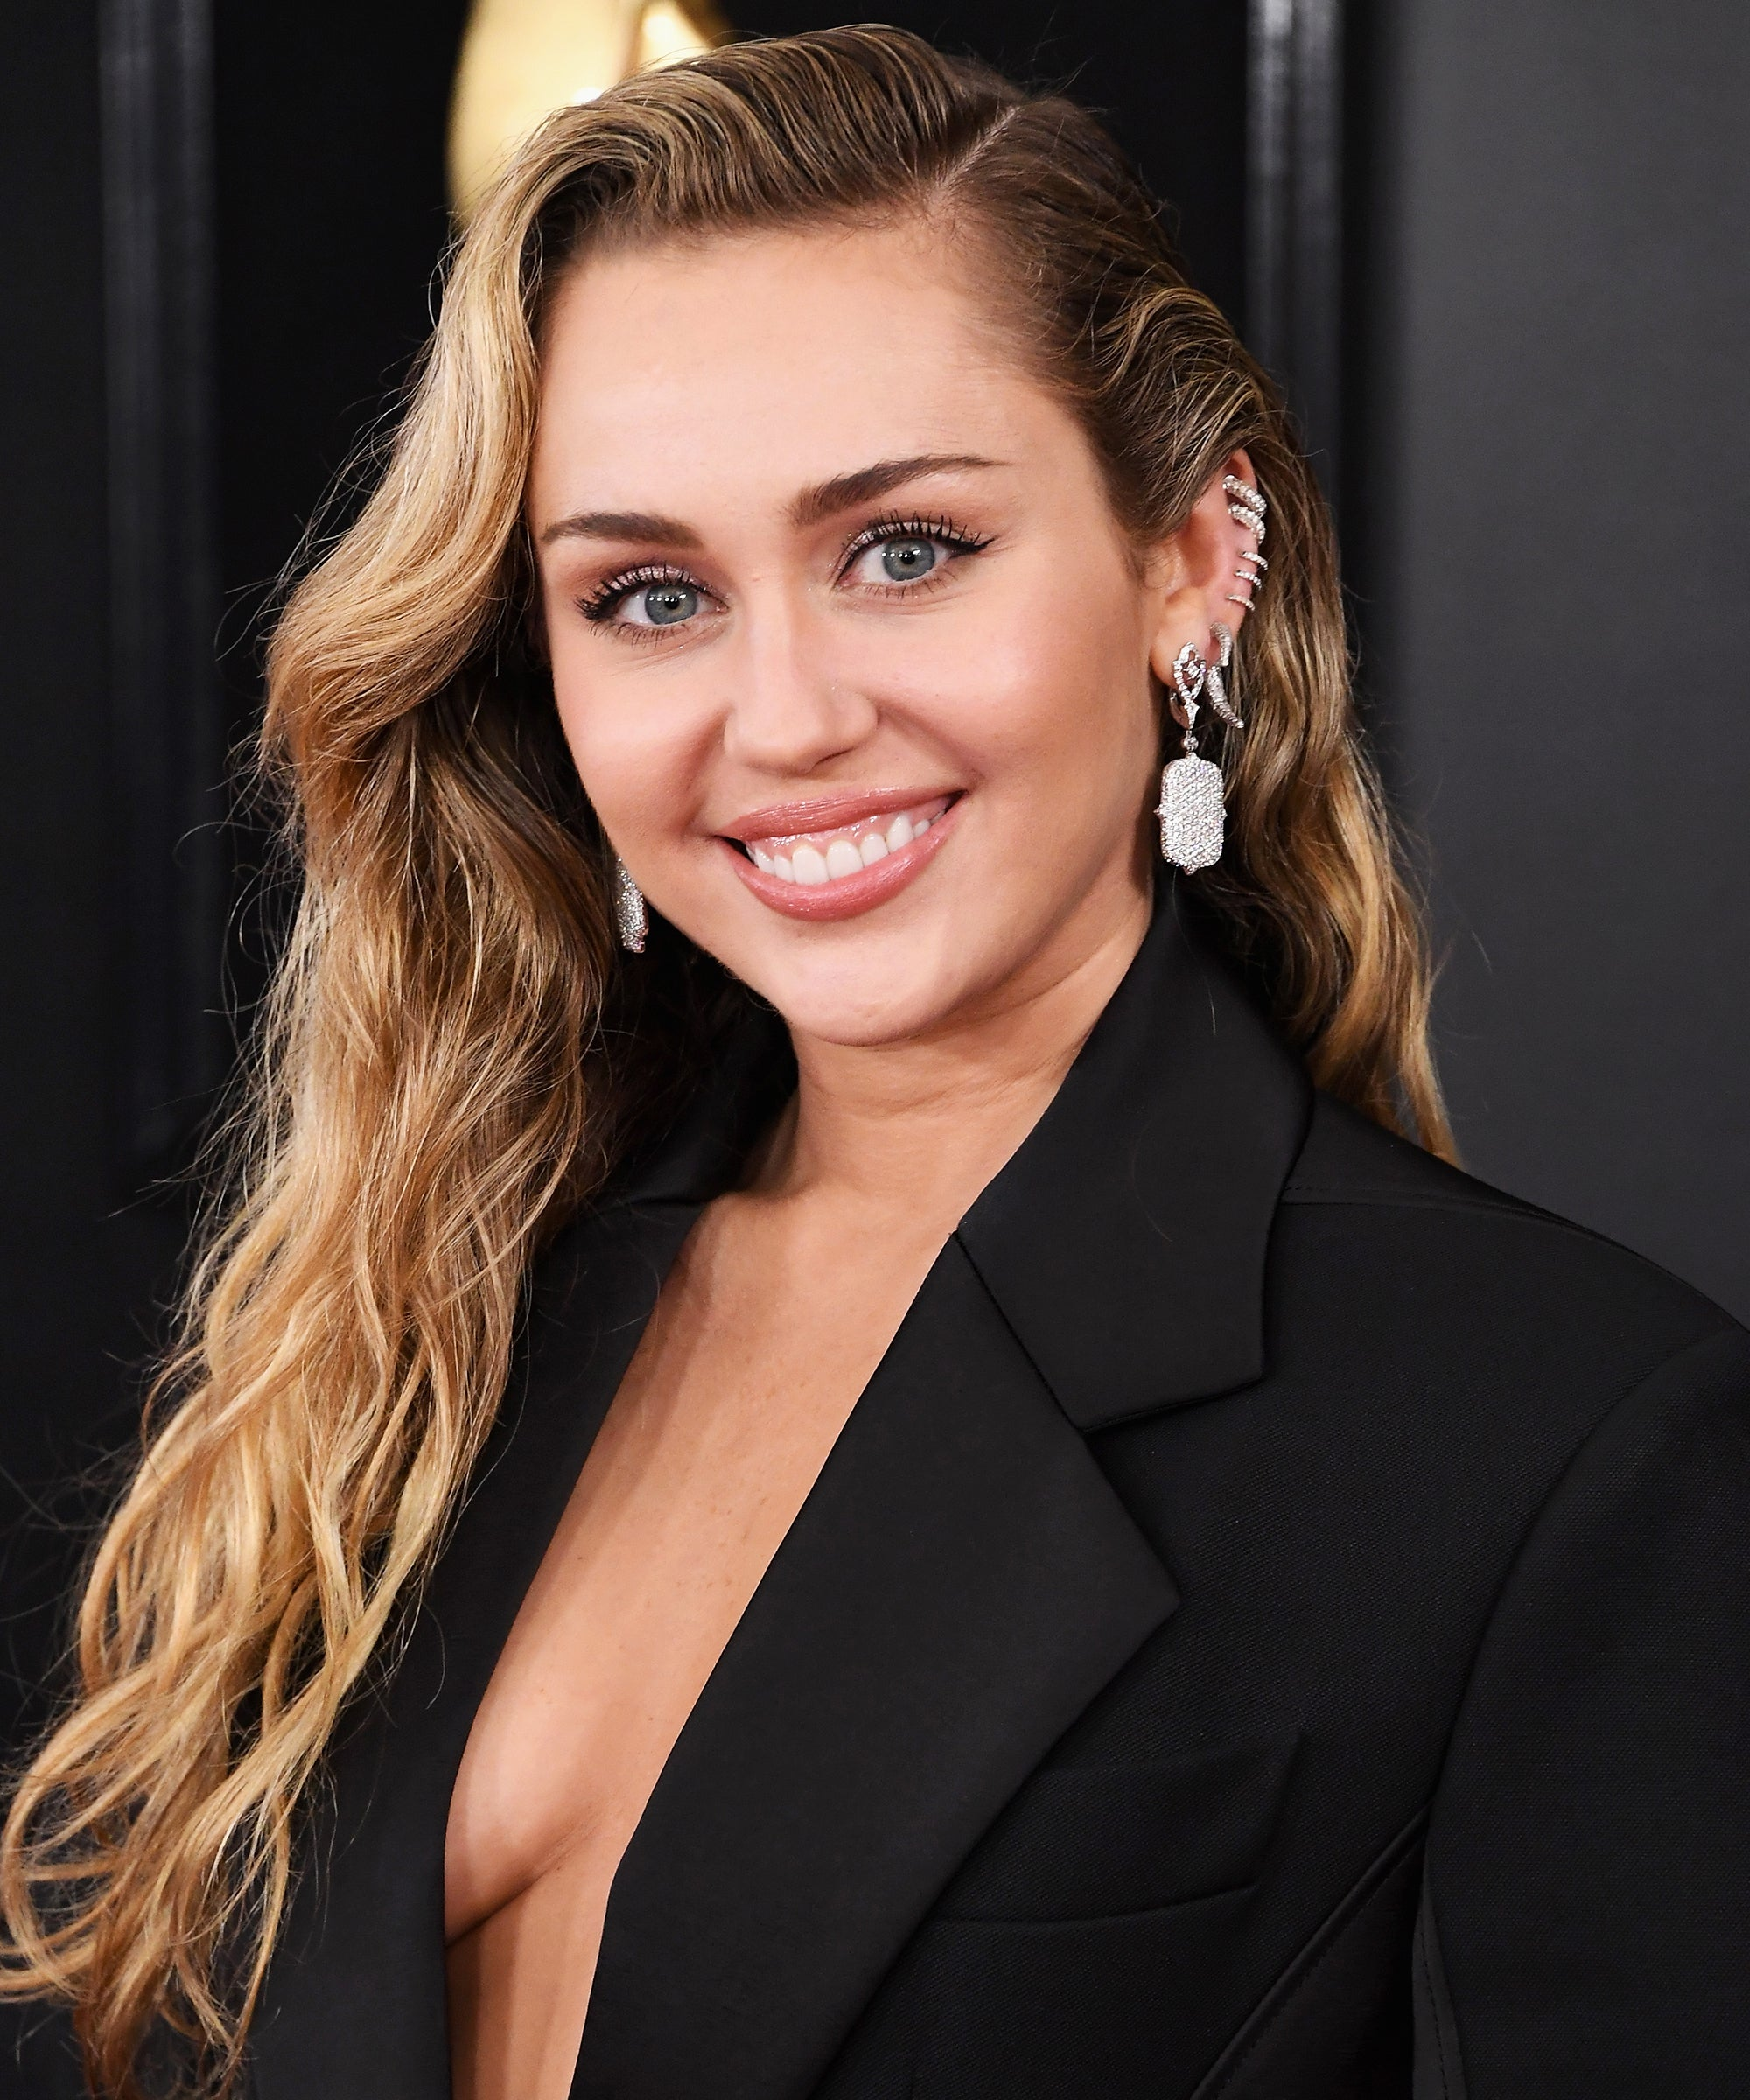 Miley Cyrus Jokes About Getting Married Again